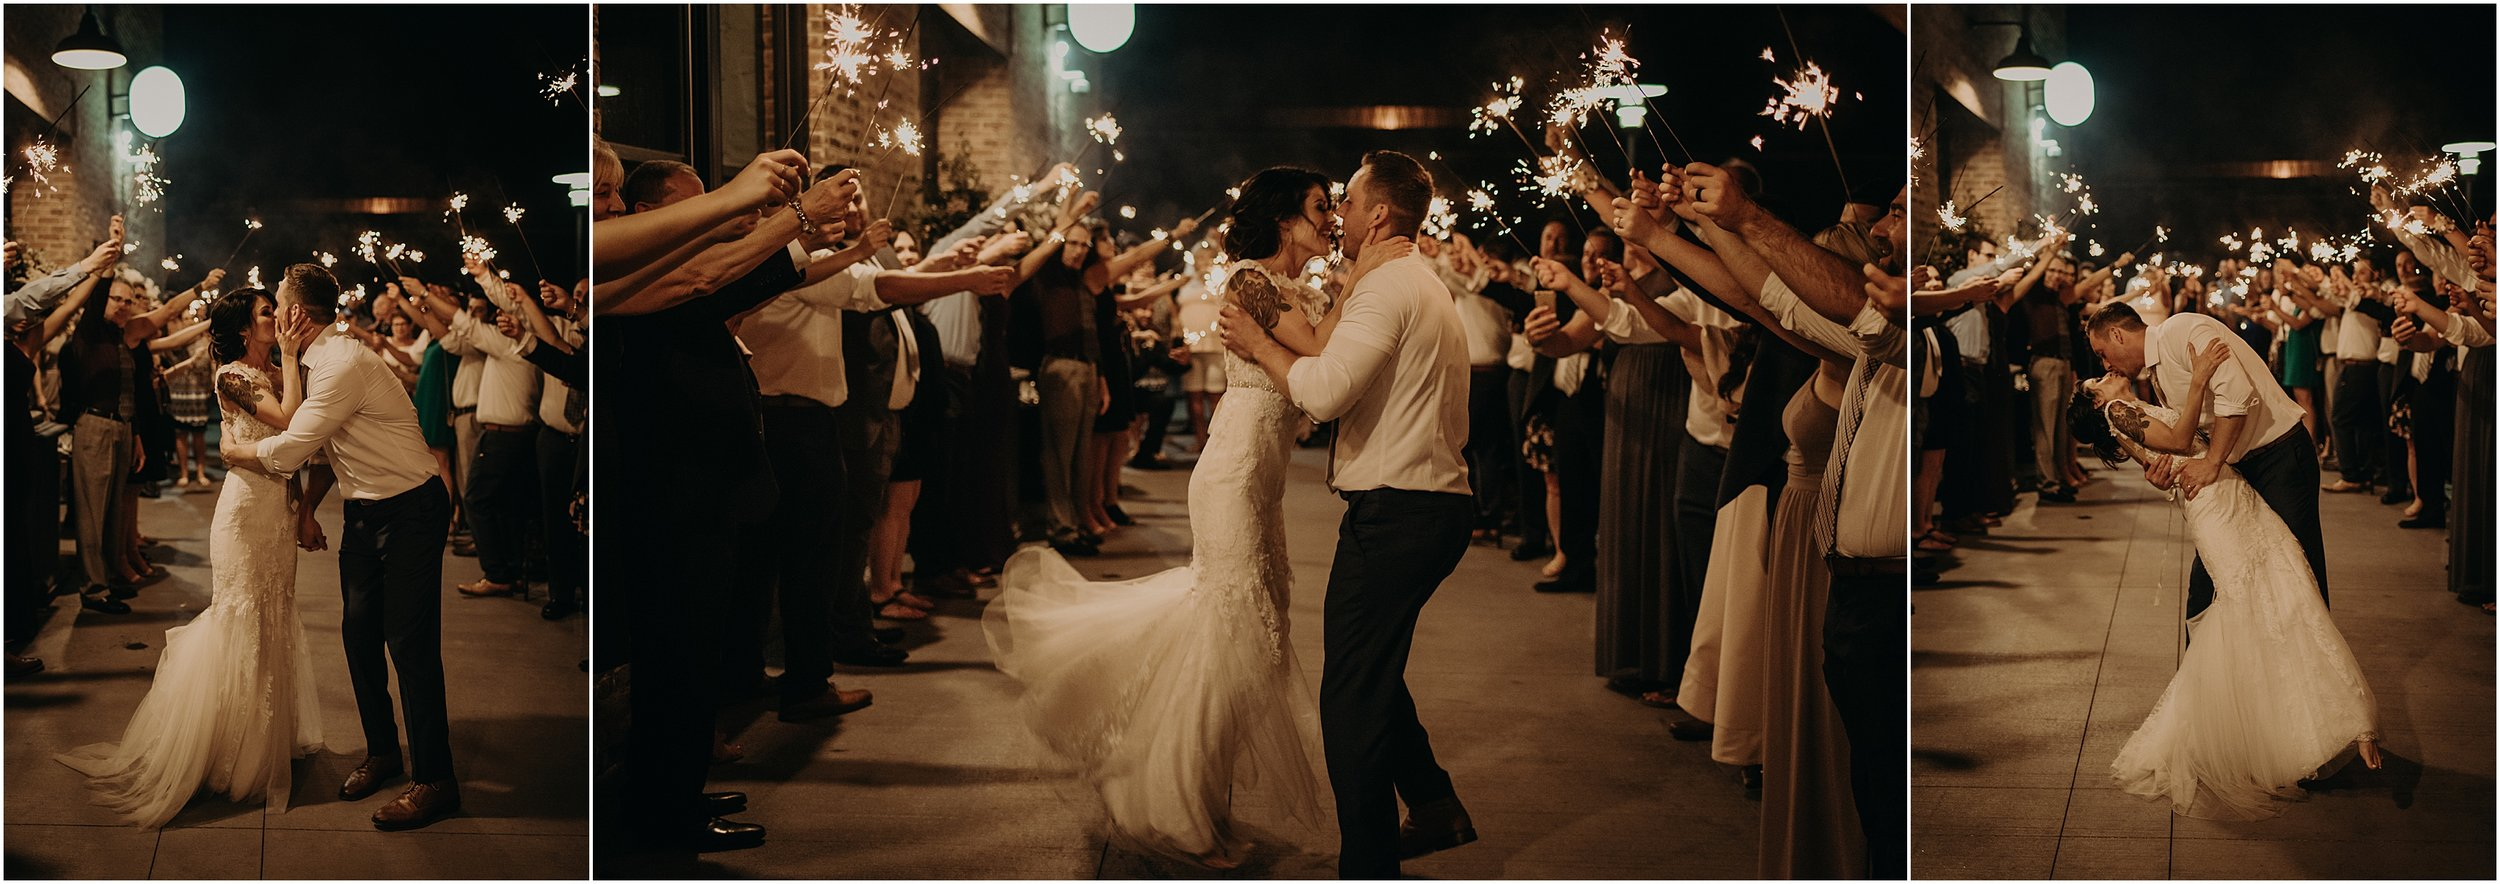 The sparkler grand exit outside of Company 251 wraps up this Chicago chic wedding